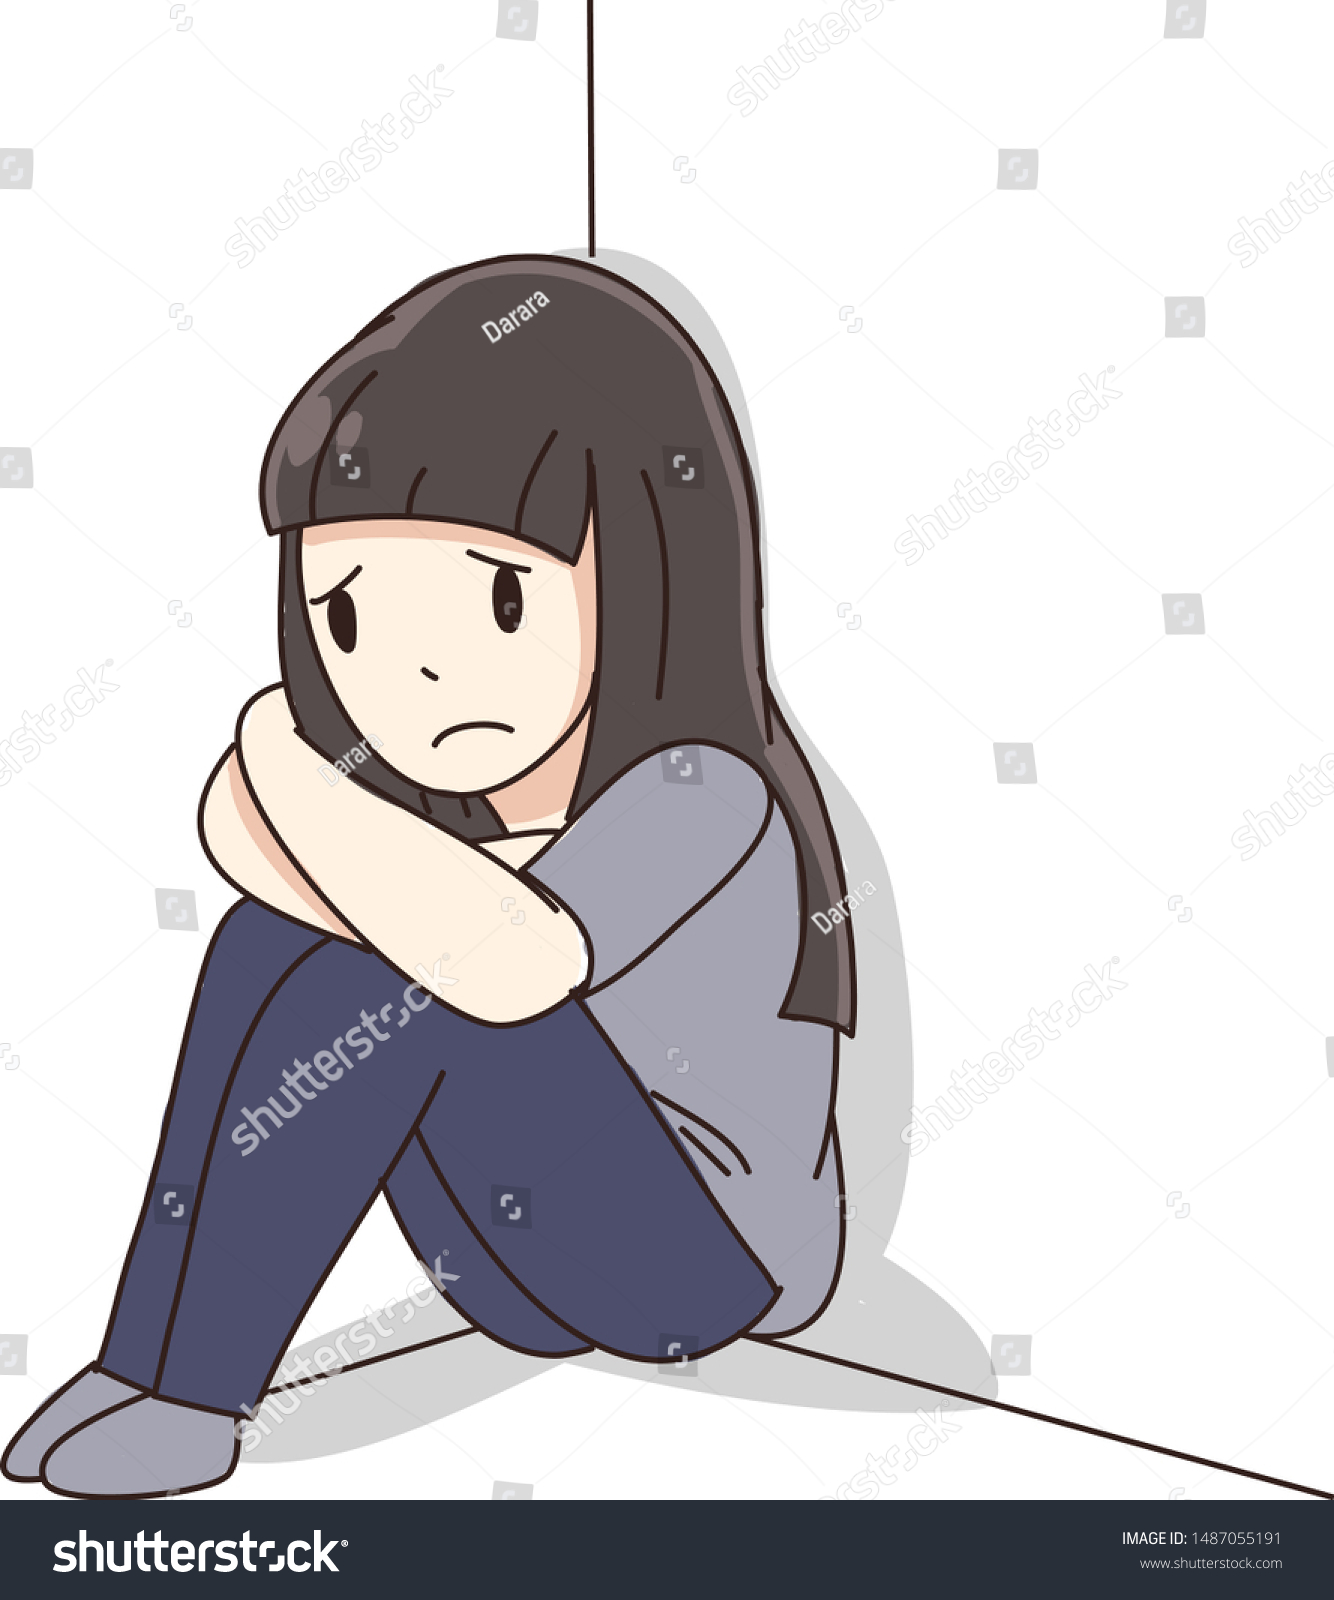 Young Depression Girl Feel Sad Cartoon Stock Vector Royalty Free 1487055191